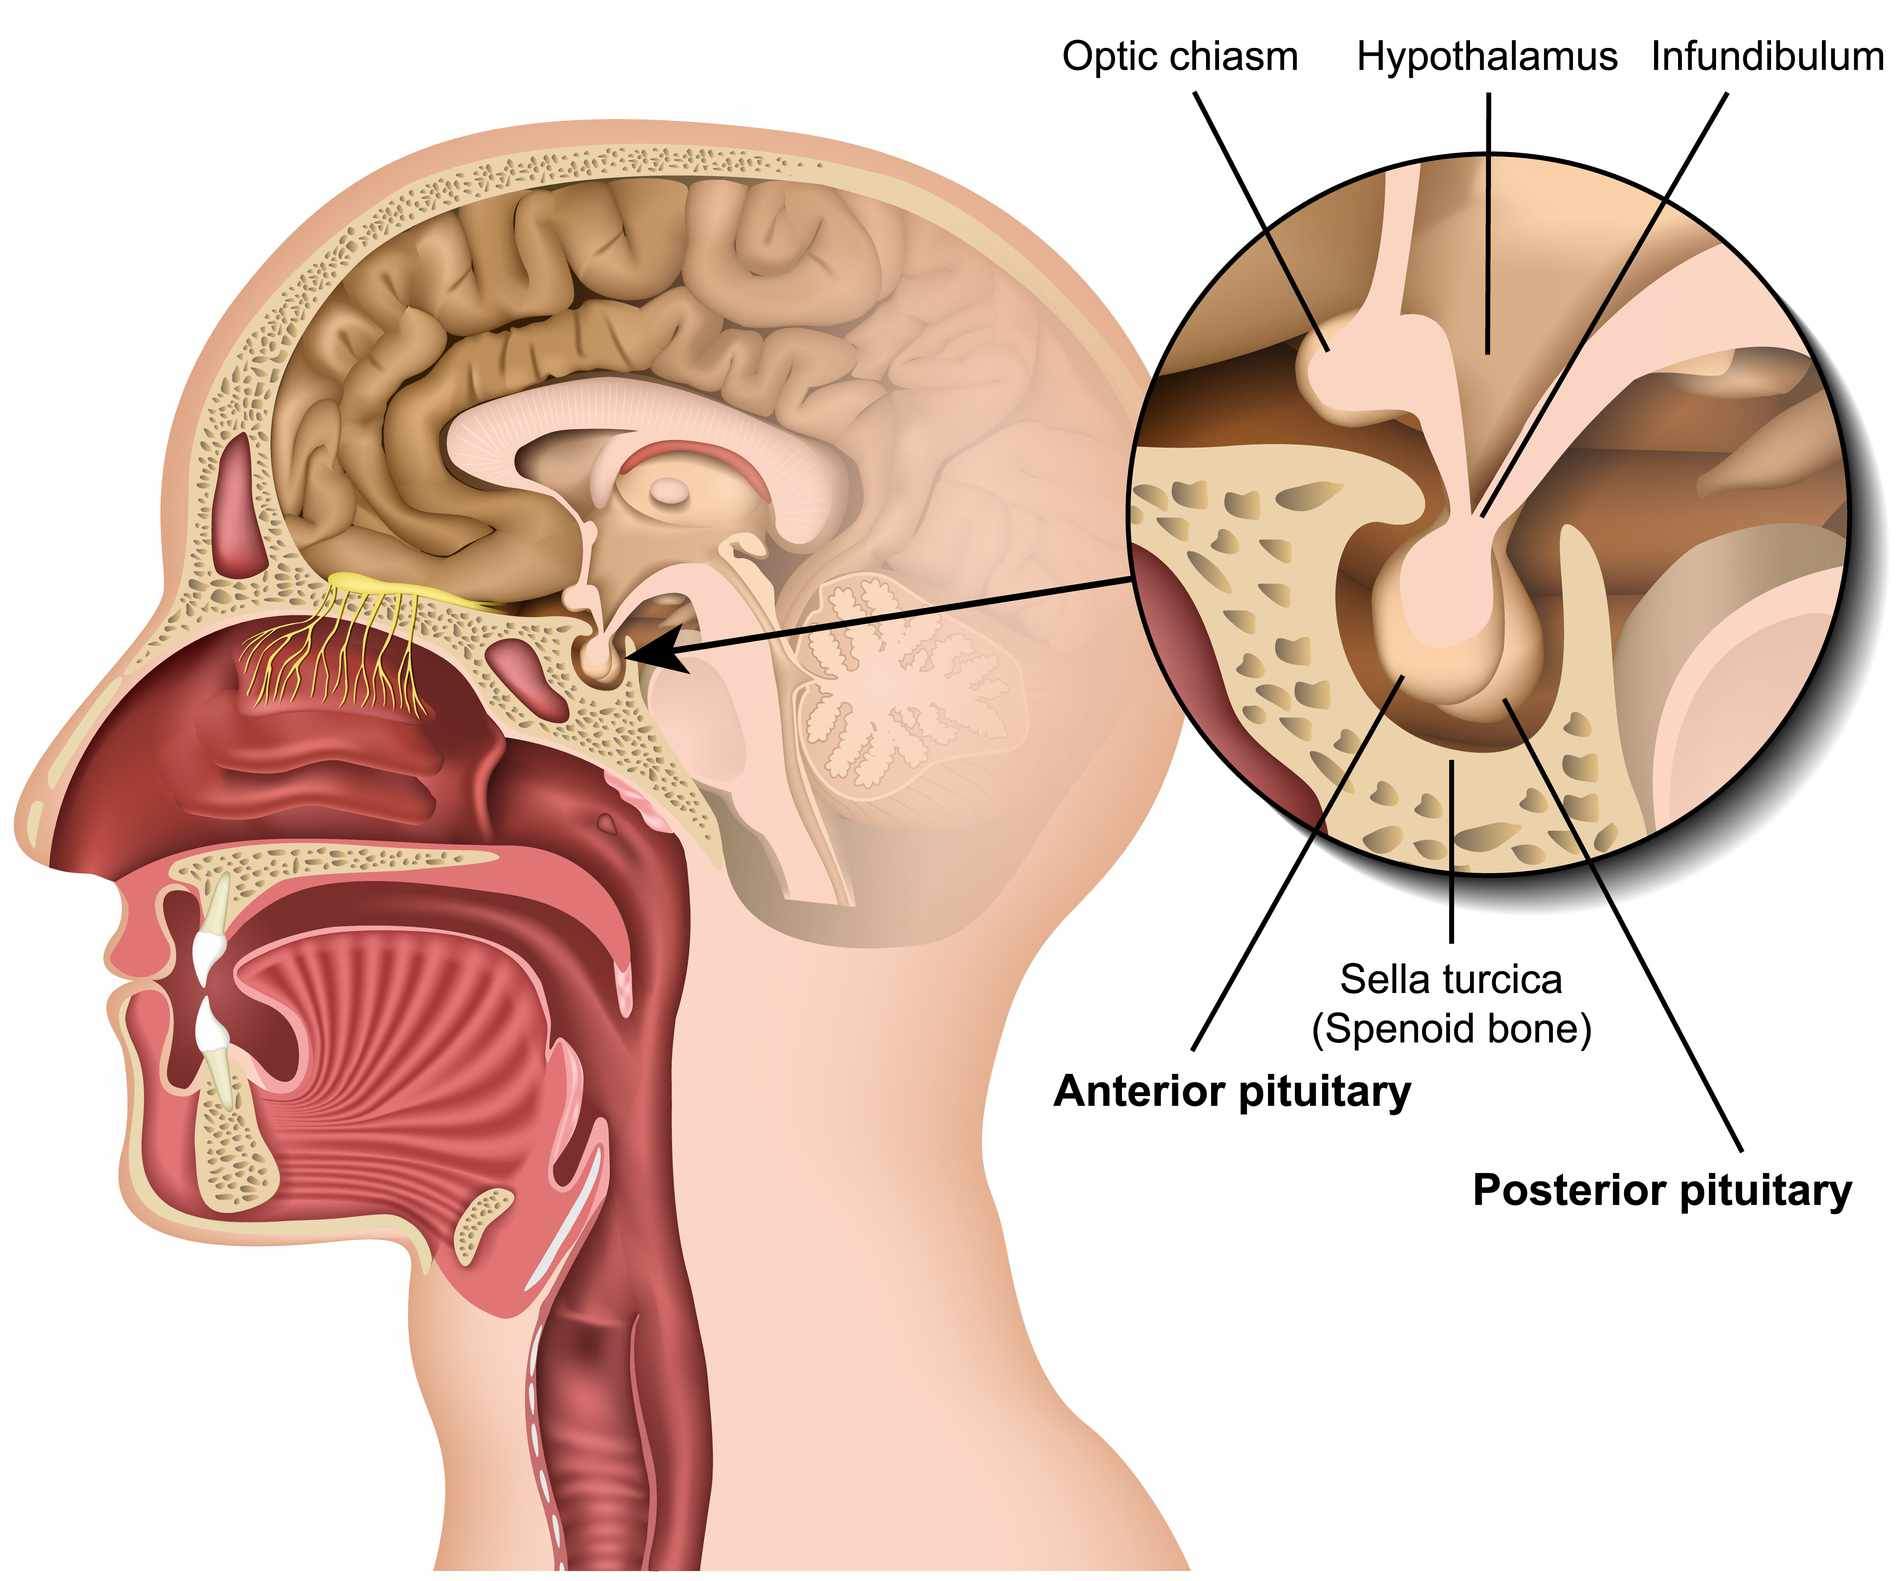 Pituitary gland anatomy 3d medical vector illustration isolated on white background hypothalamus in human brain eps 10 infographic - stock vector